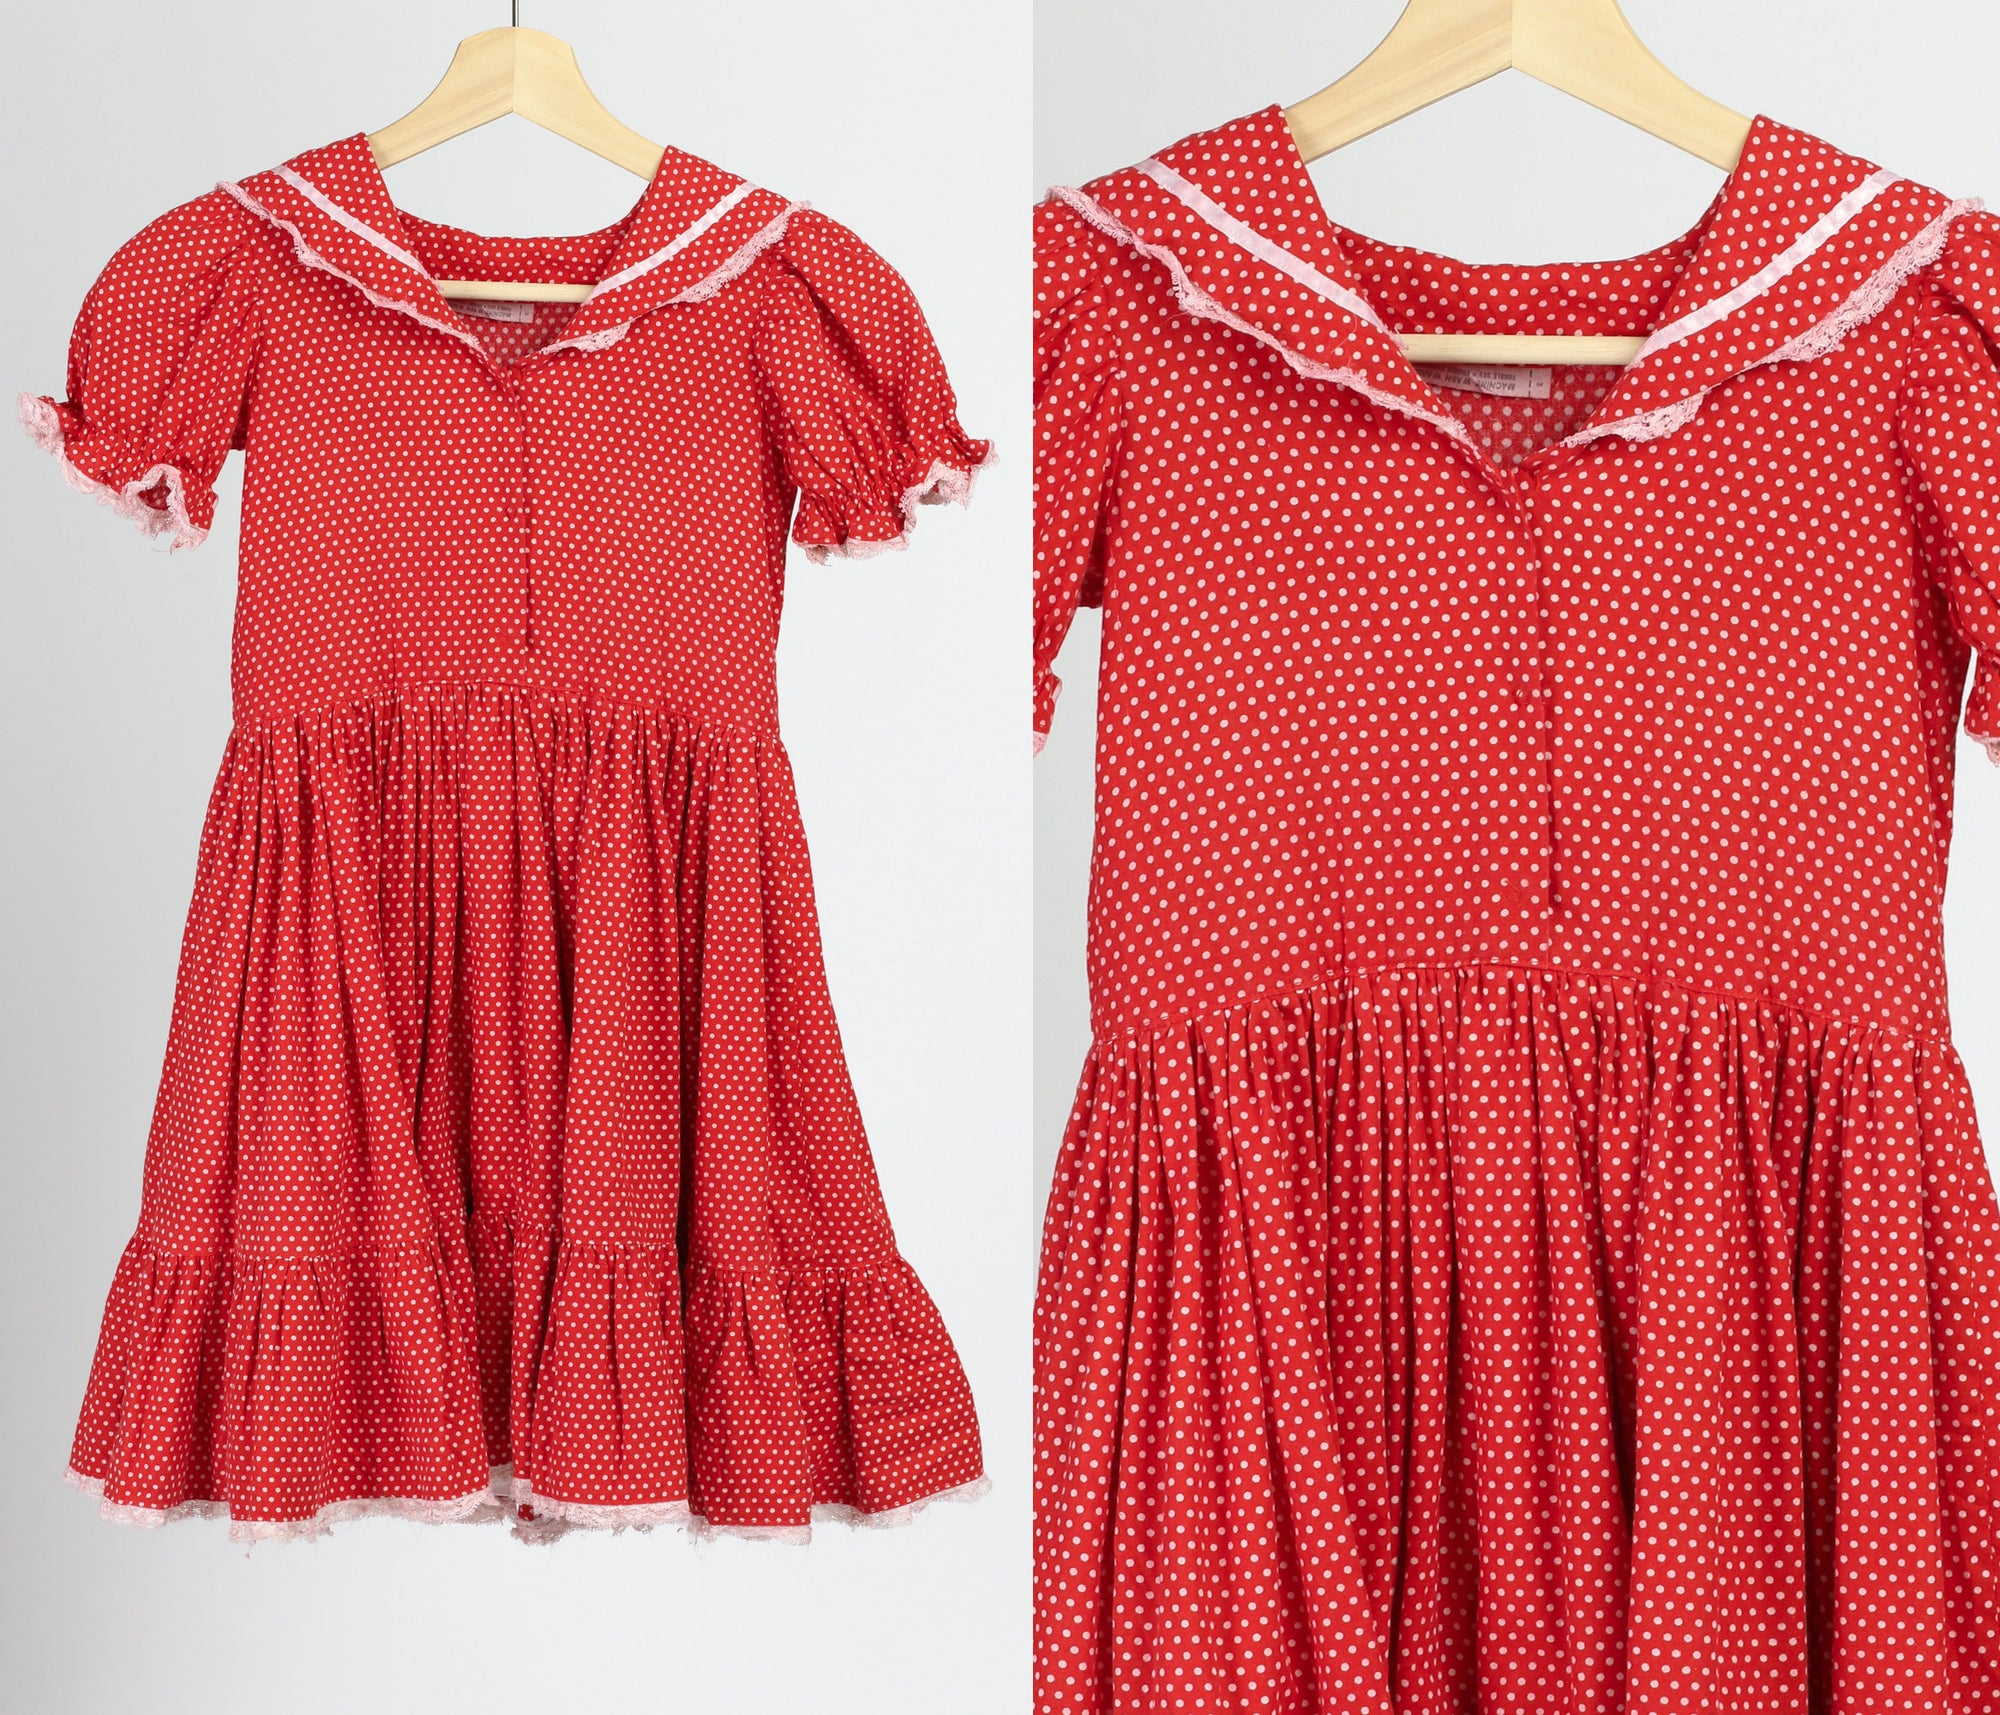 60s 70s Girl's Red & White Polka Dot Dress - Small